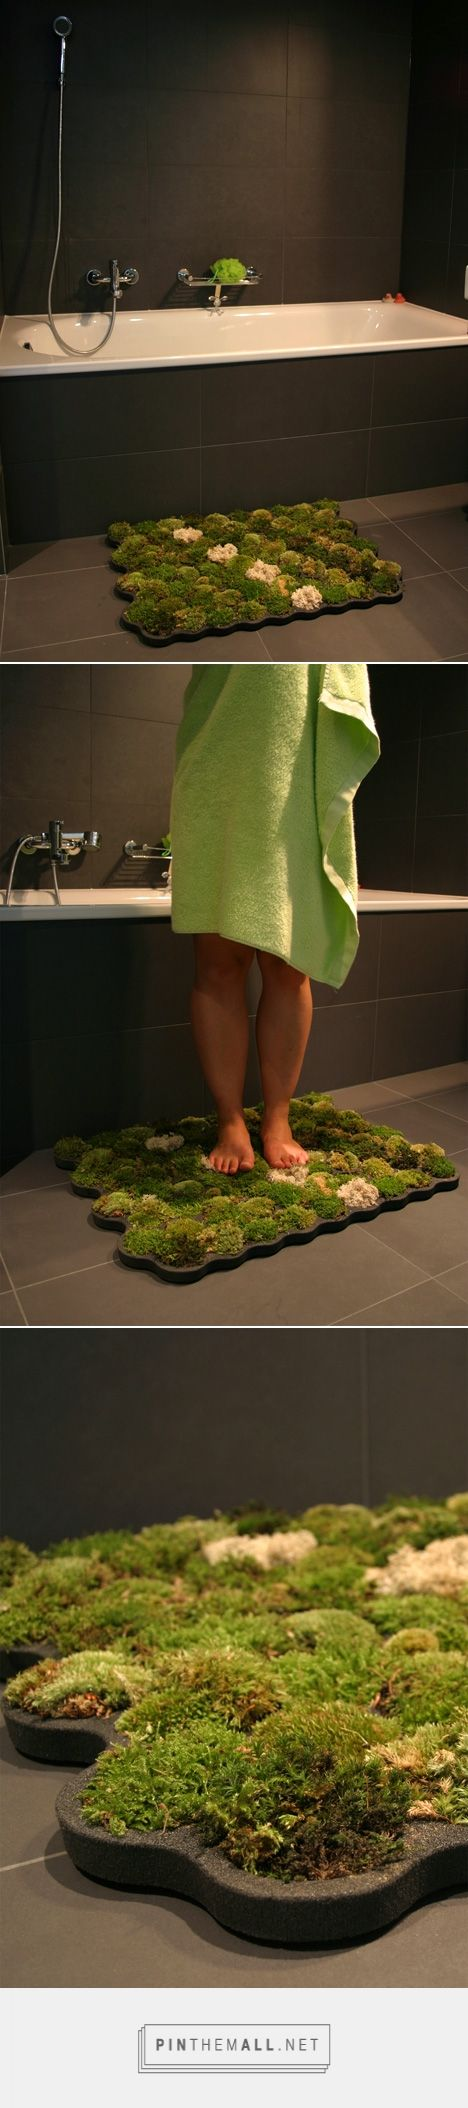 Immaculate Mini Lawn In Your Loo | Yanko Desig Bonne idée, mais lire les commentaires sur la qualité... The Moss Carpet looks at getting the grass to your feet, and that too in your loo! Made from imputrescible foam called plastazote, the mat includes ball moss, island moss and forest moss. The humidity of the bathroom ensures that the mosses thrive.